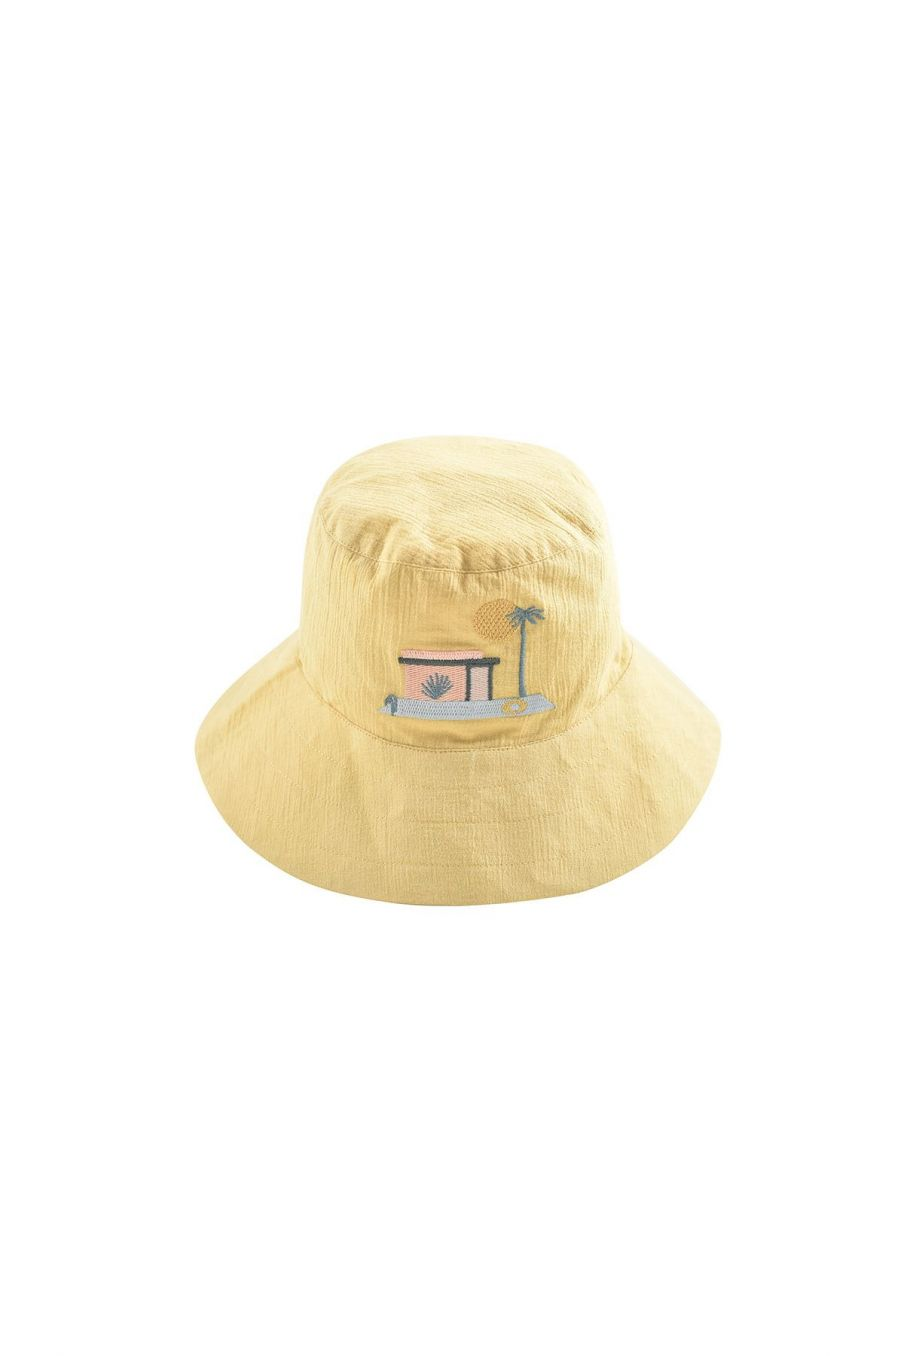 boheme chic vintage chapeau bébé garcon afir soft honey & off-white hawaï